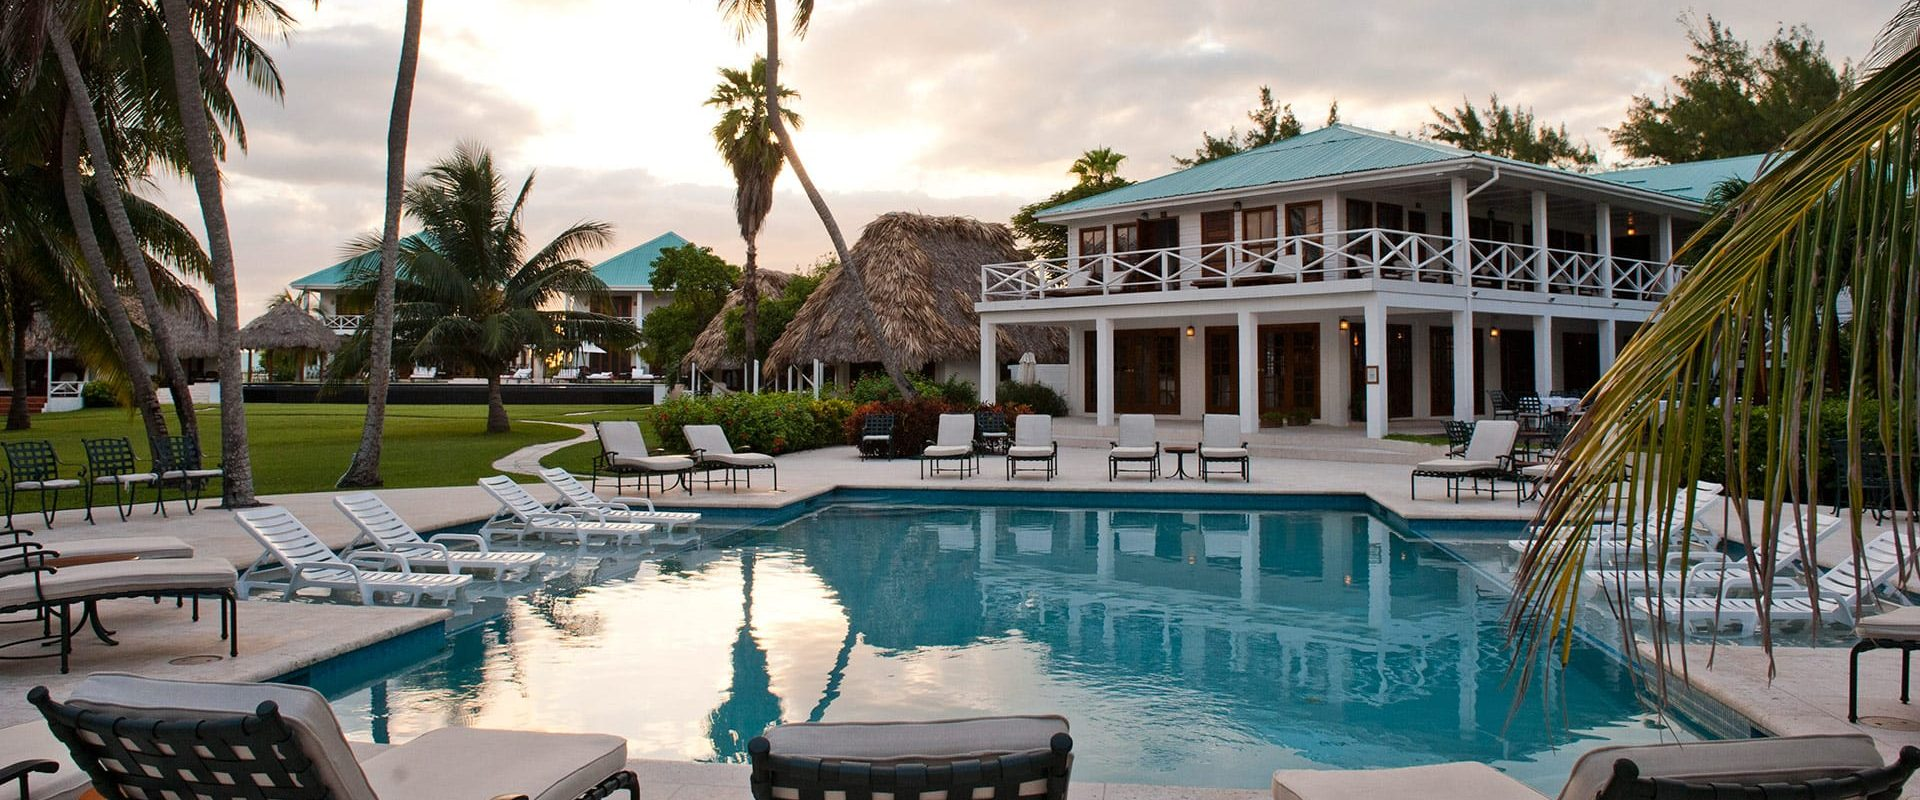 Beach front pool at dusk at Victoria House Resort and Spa, Belize